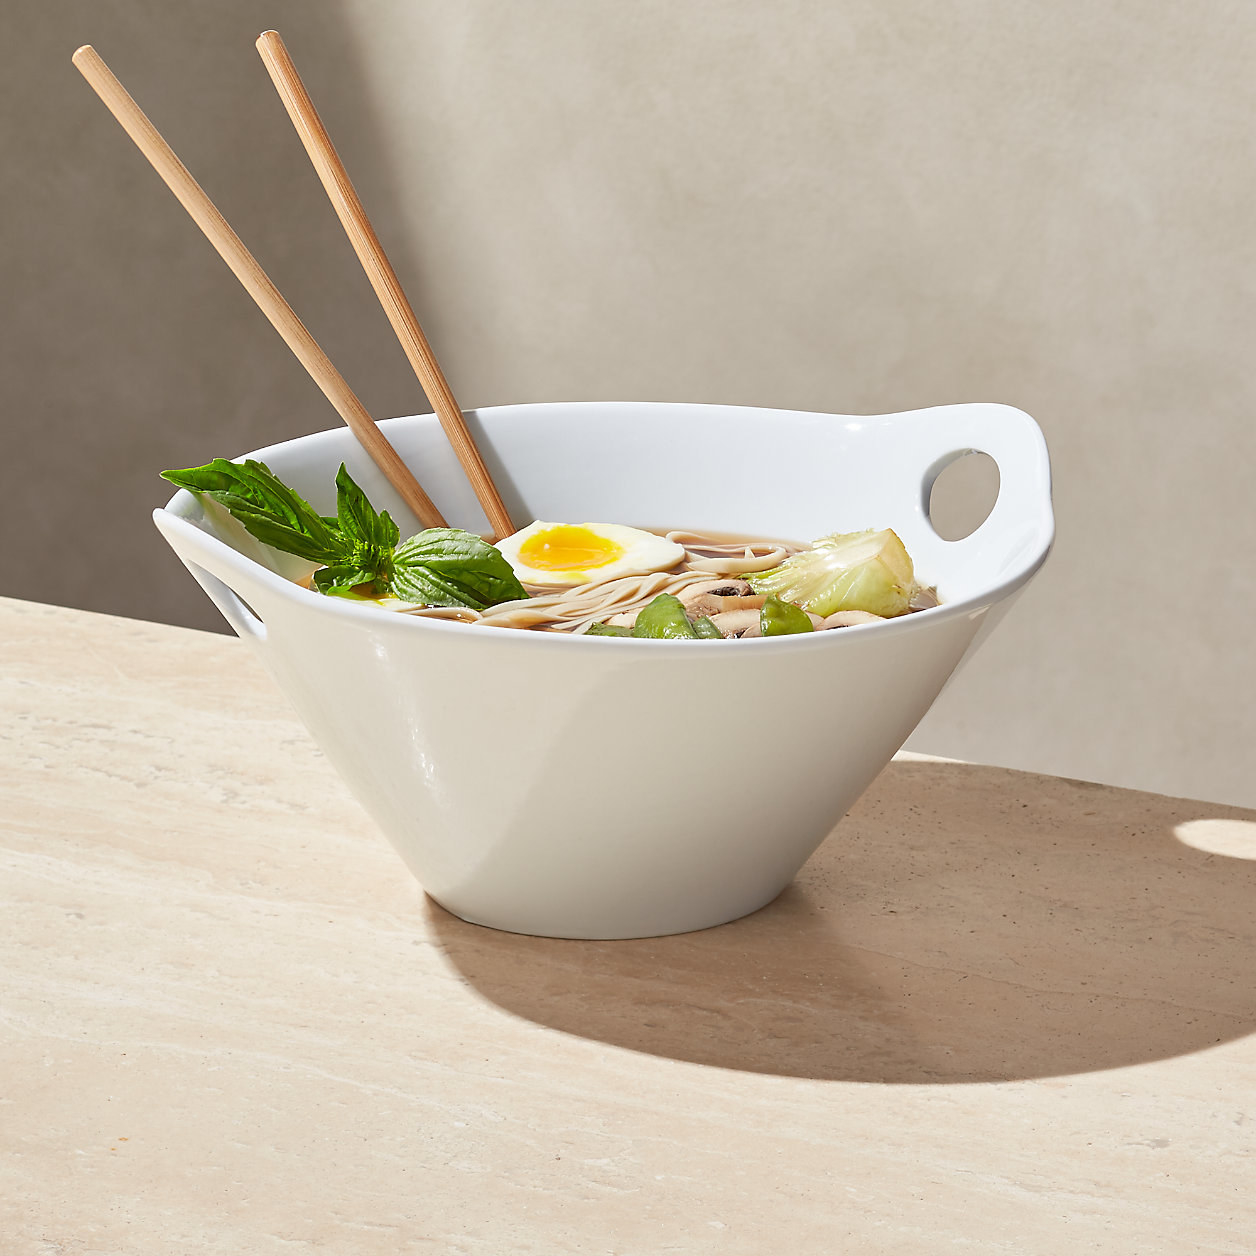 The white ramen bowl with holes for the chopsticks